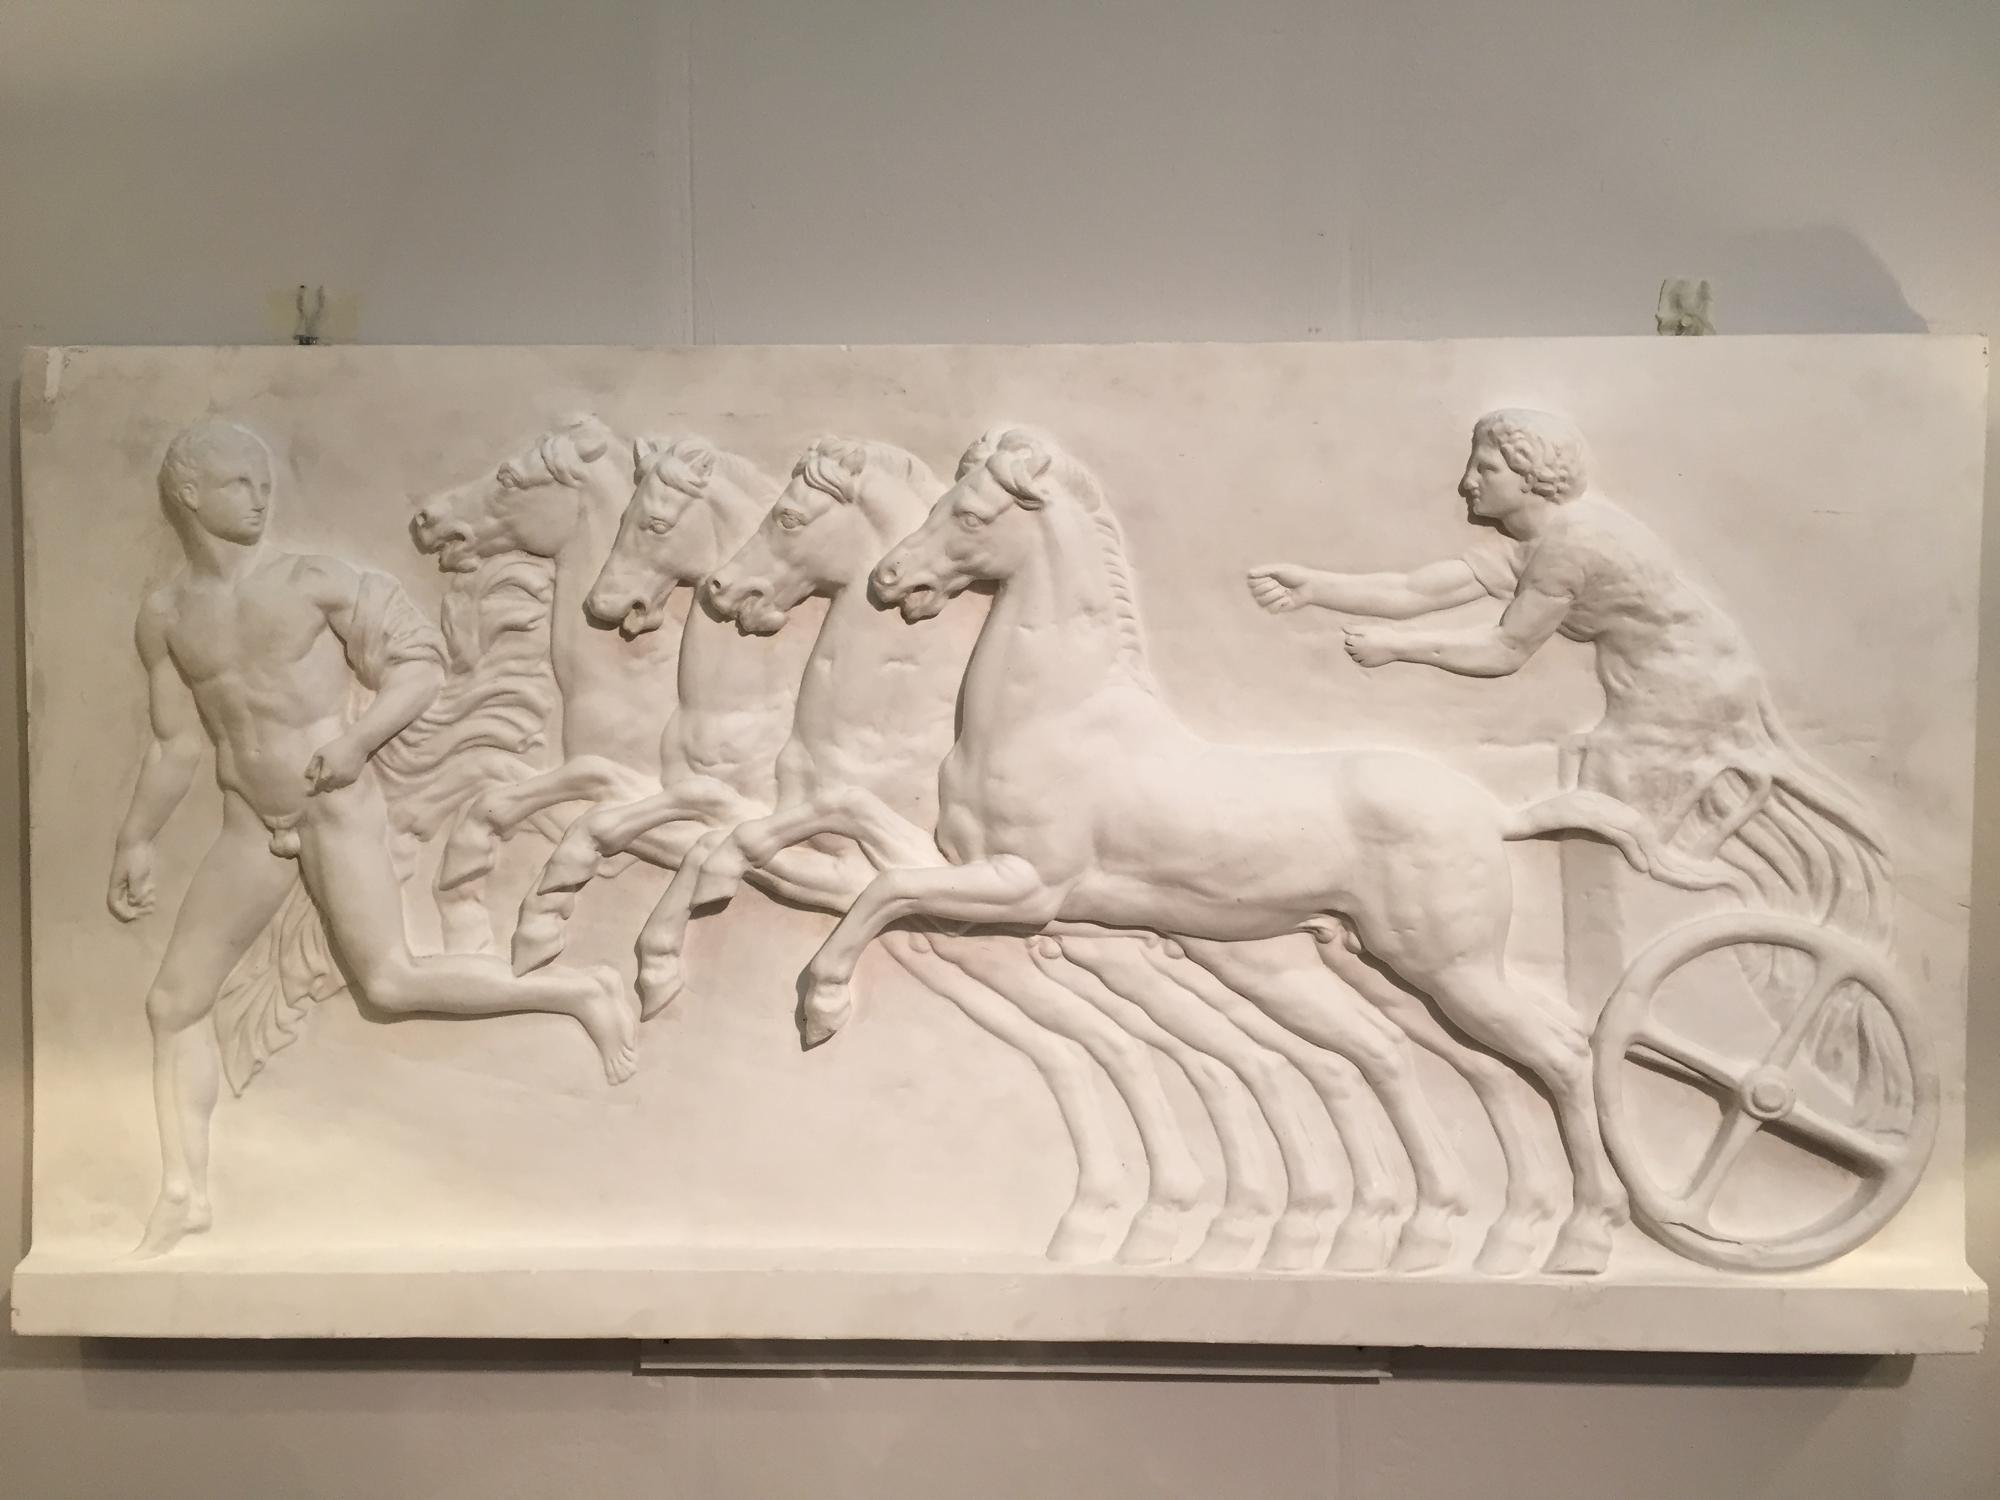 Large plaster relief plaque